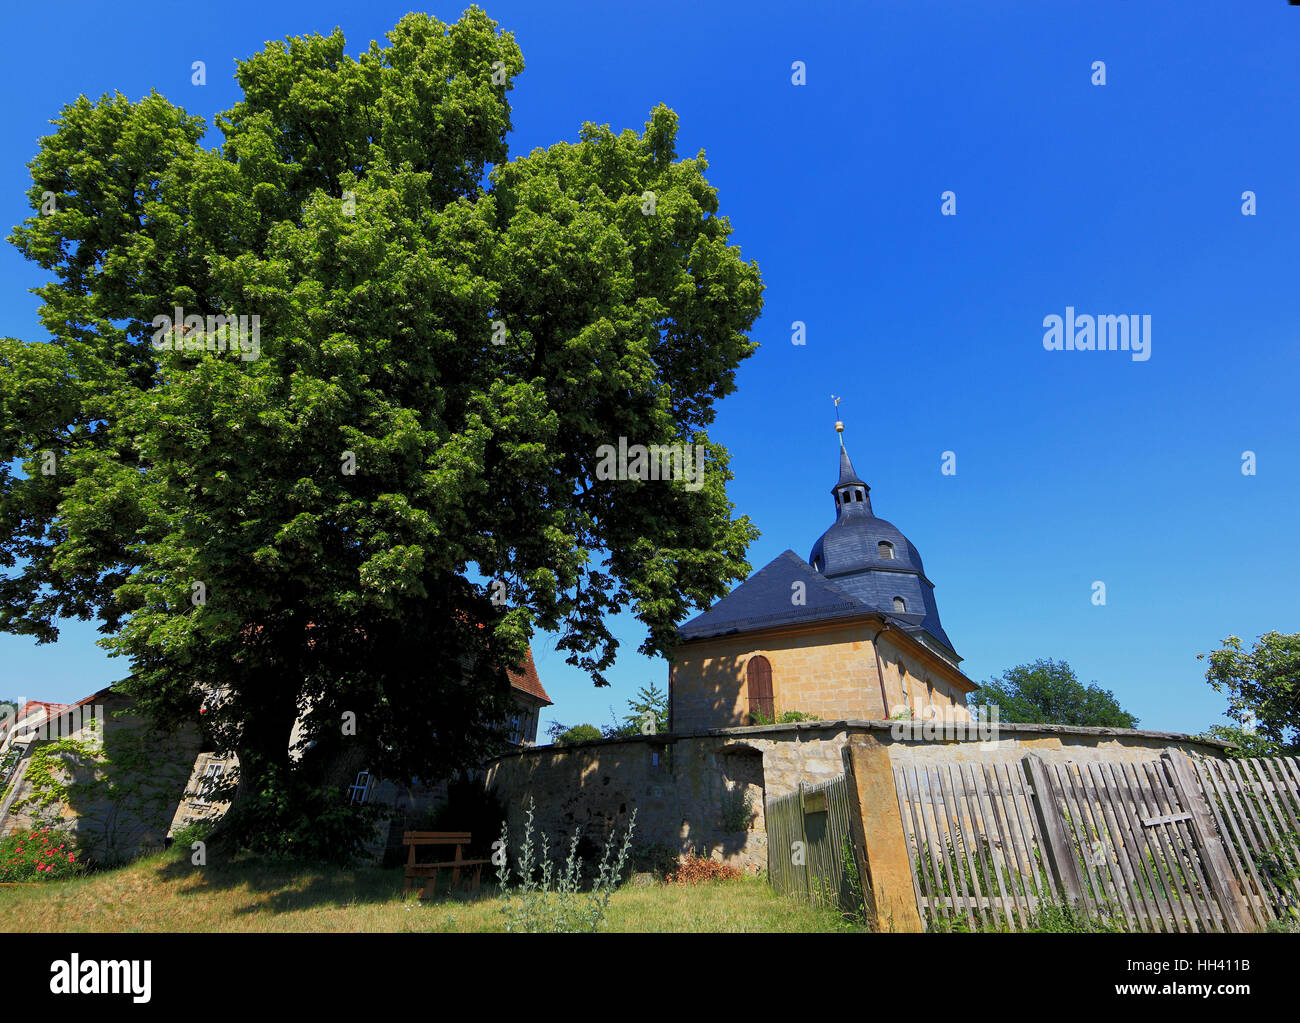 aisleless church Unsere liebe Frau, church of Langenstadt, district of  Kulmbach, Upper Franconia, Bavaria, Germany - Stock Image